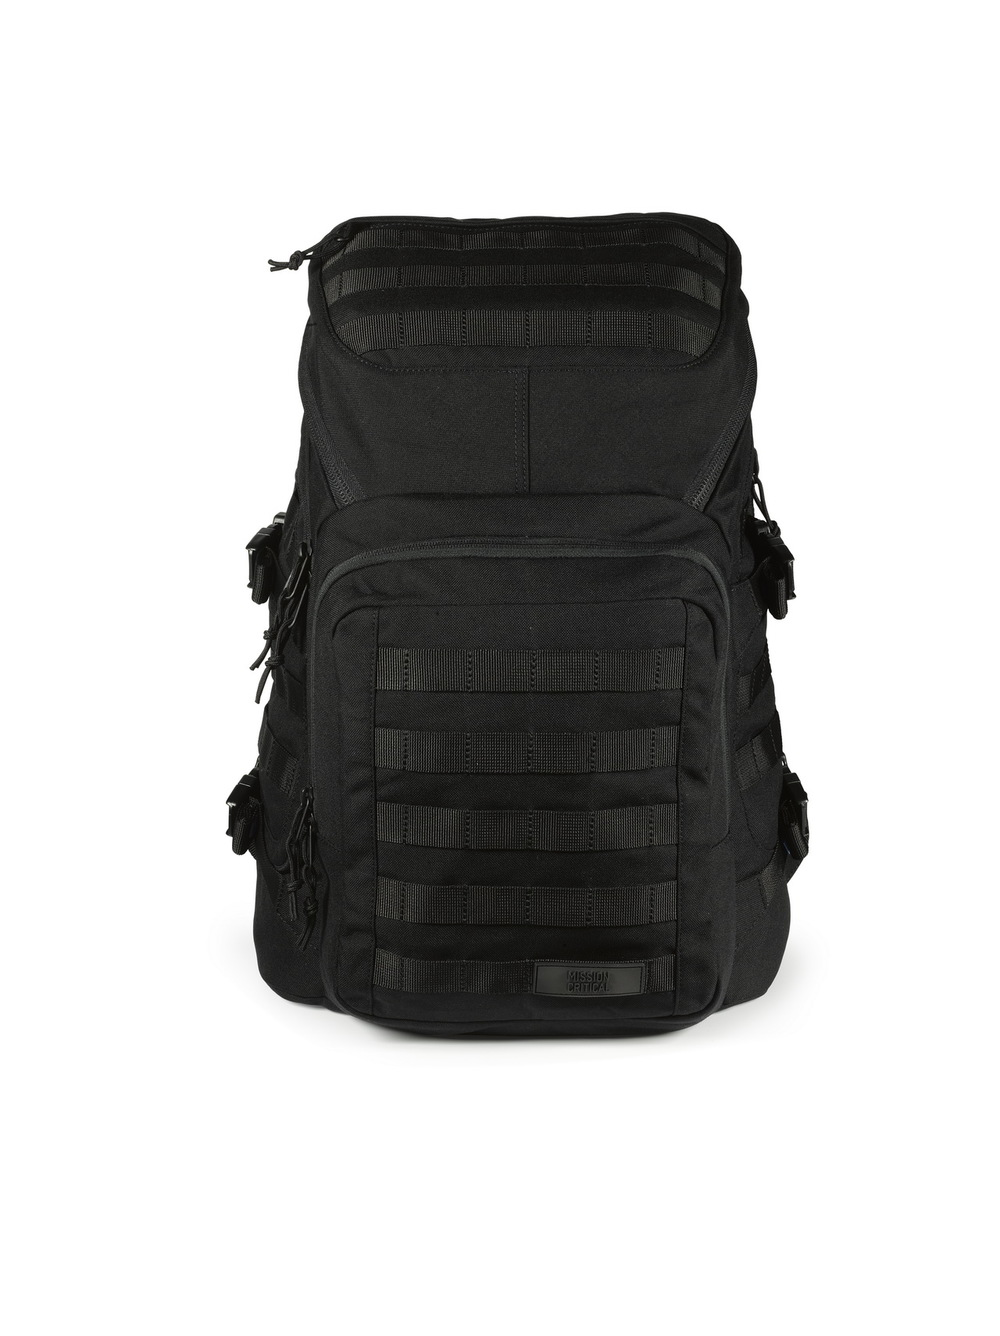 Mission Critical Backpack